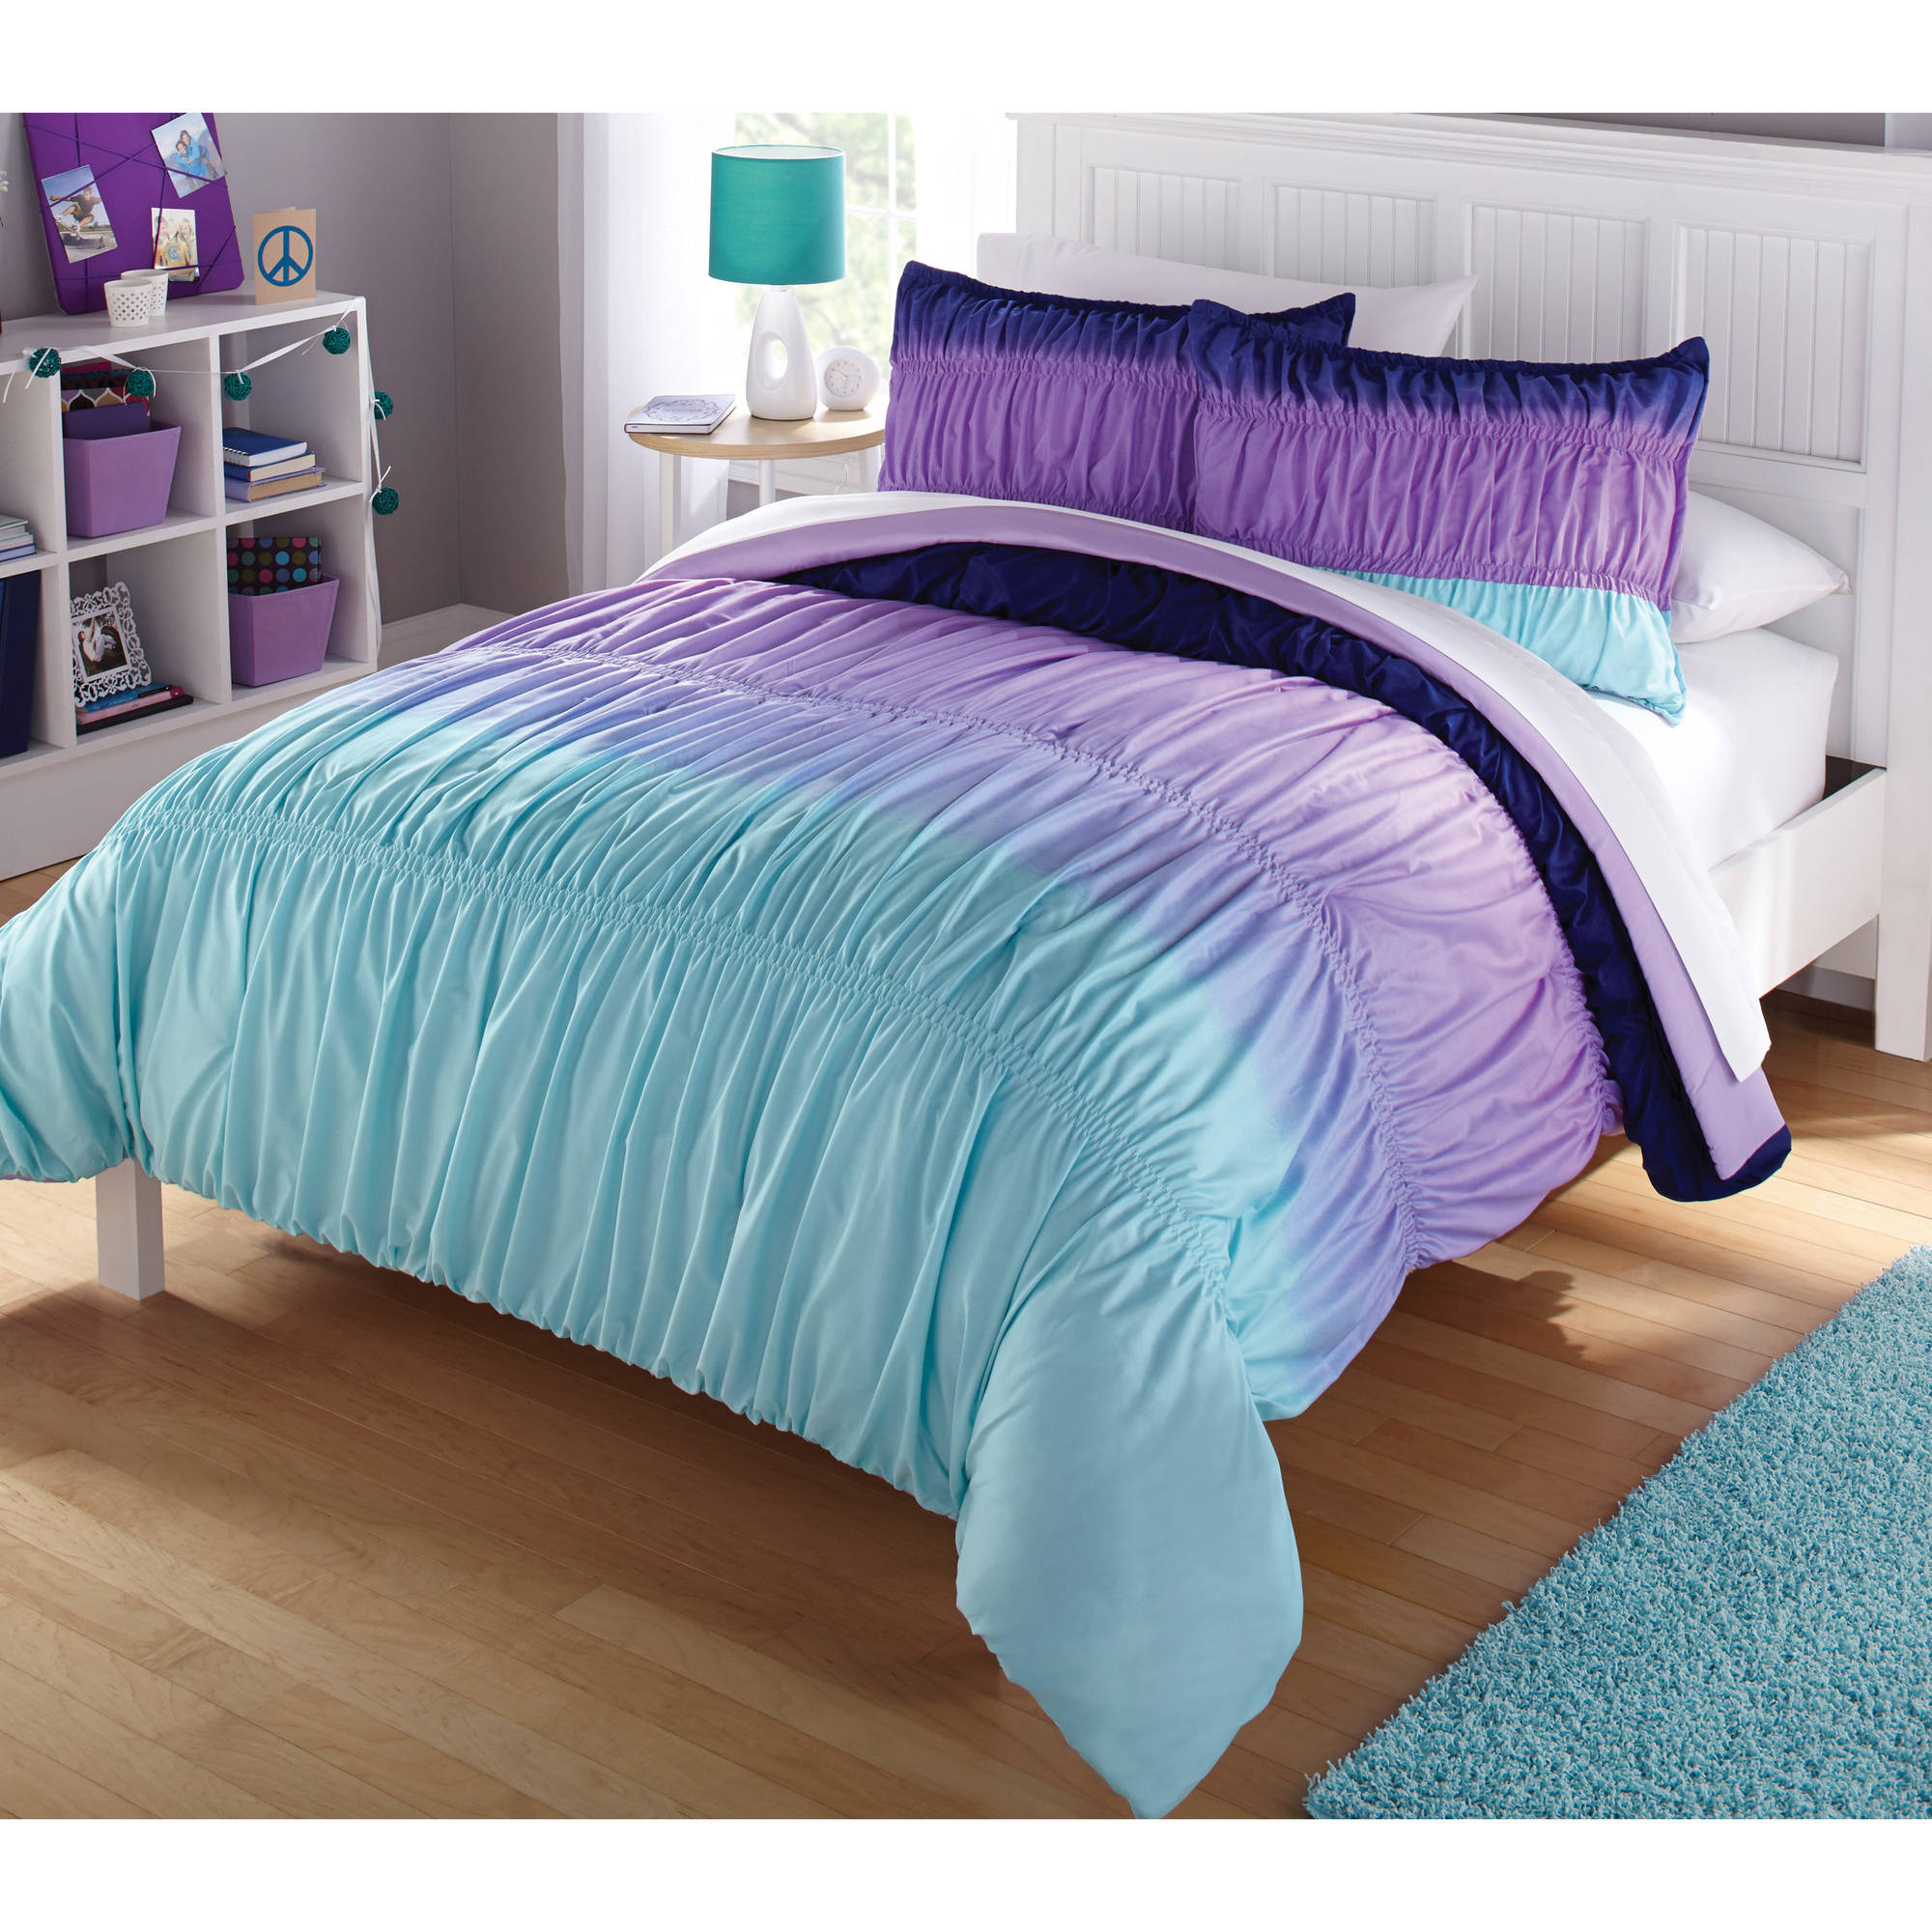 Blue and green bedding for teens - Latitude Ombre Ruched Reversible Complete Bedding Set Purple